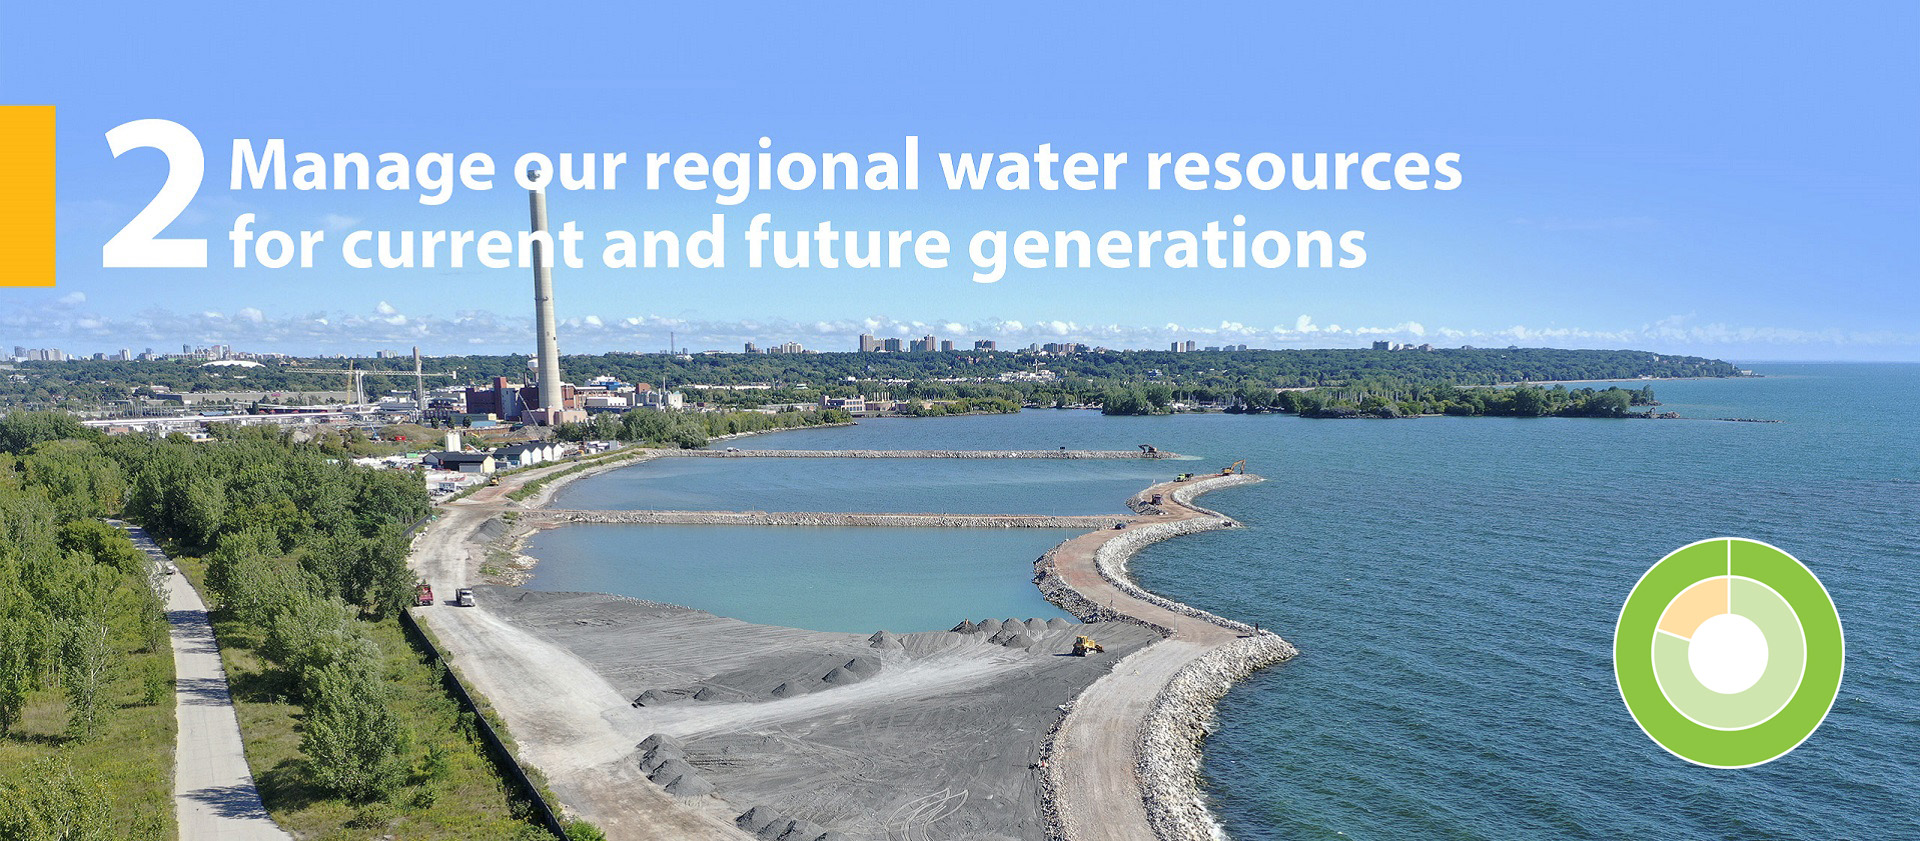 TRCA Strategic Goal 2 Manage regional water resources for current and future generations